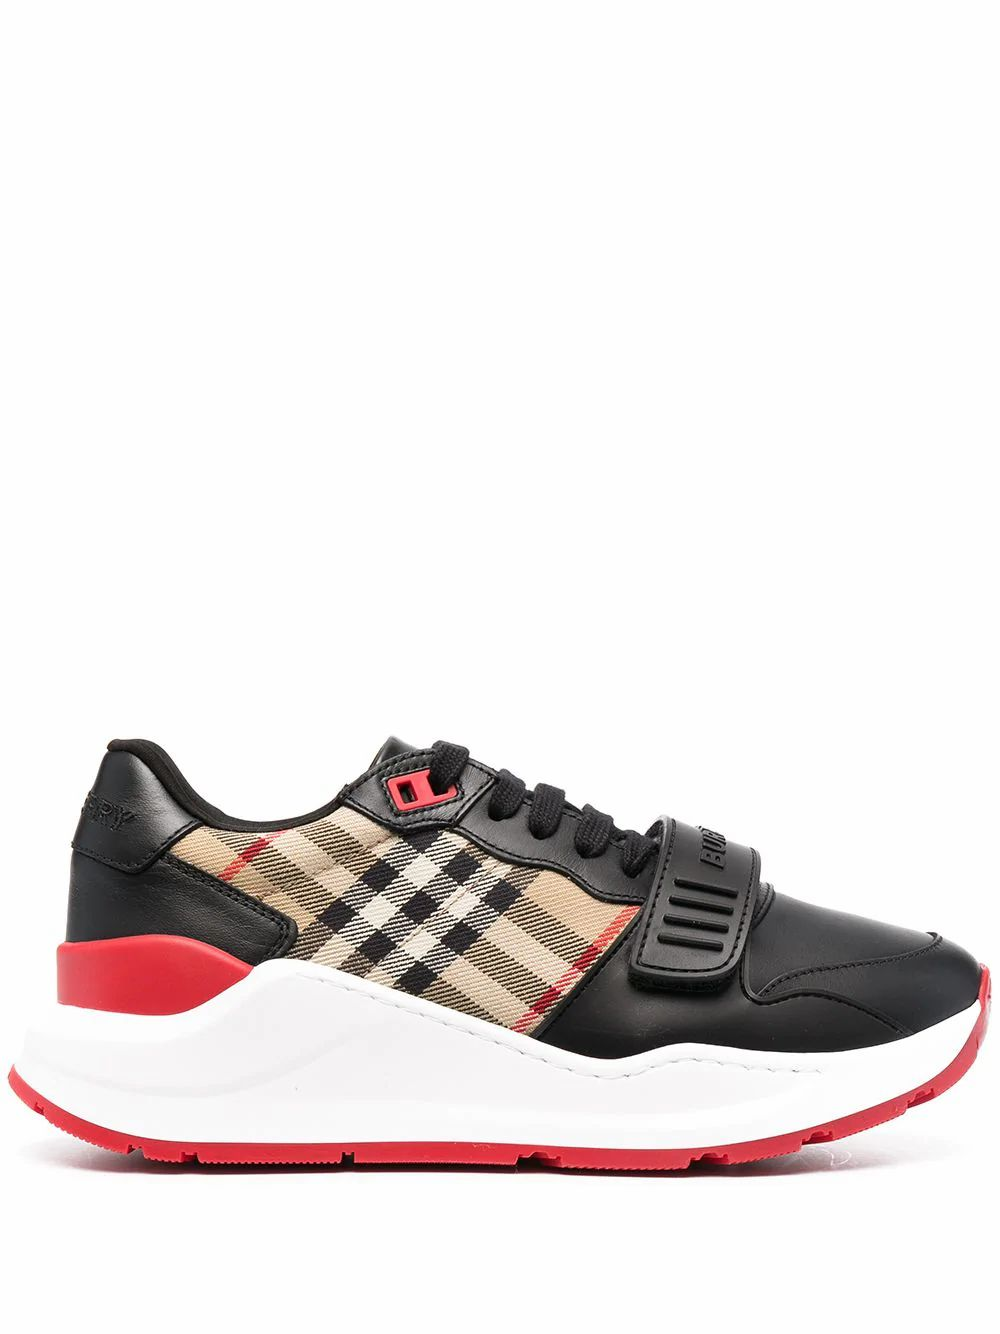 Burberry Leathers BURBERRY WOMEN'S BLACK LEATHER SNEAKERS